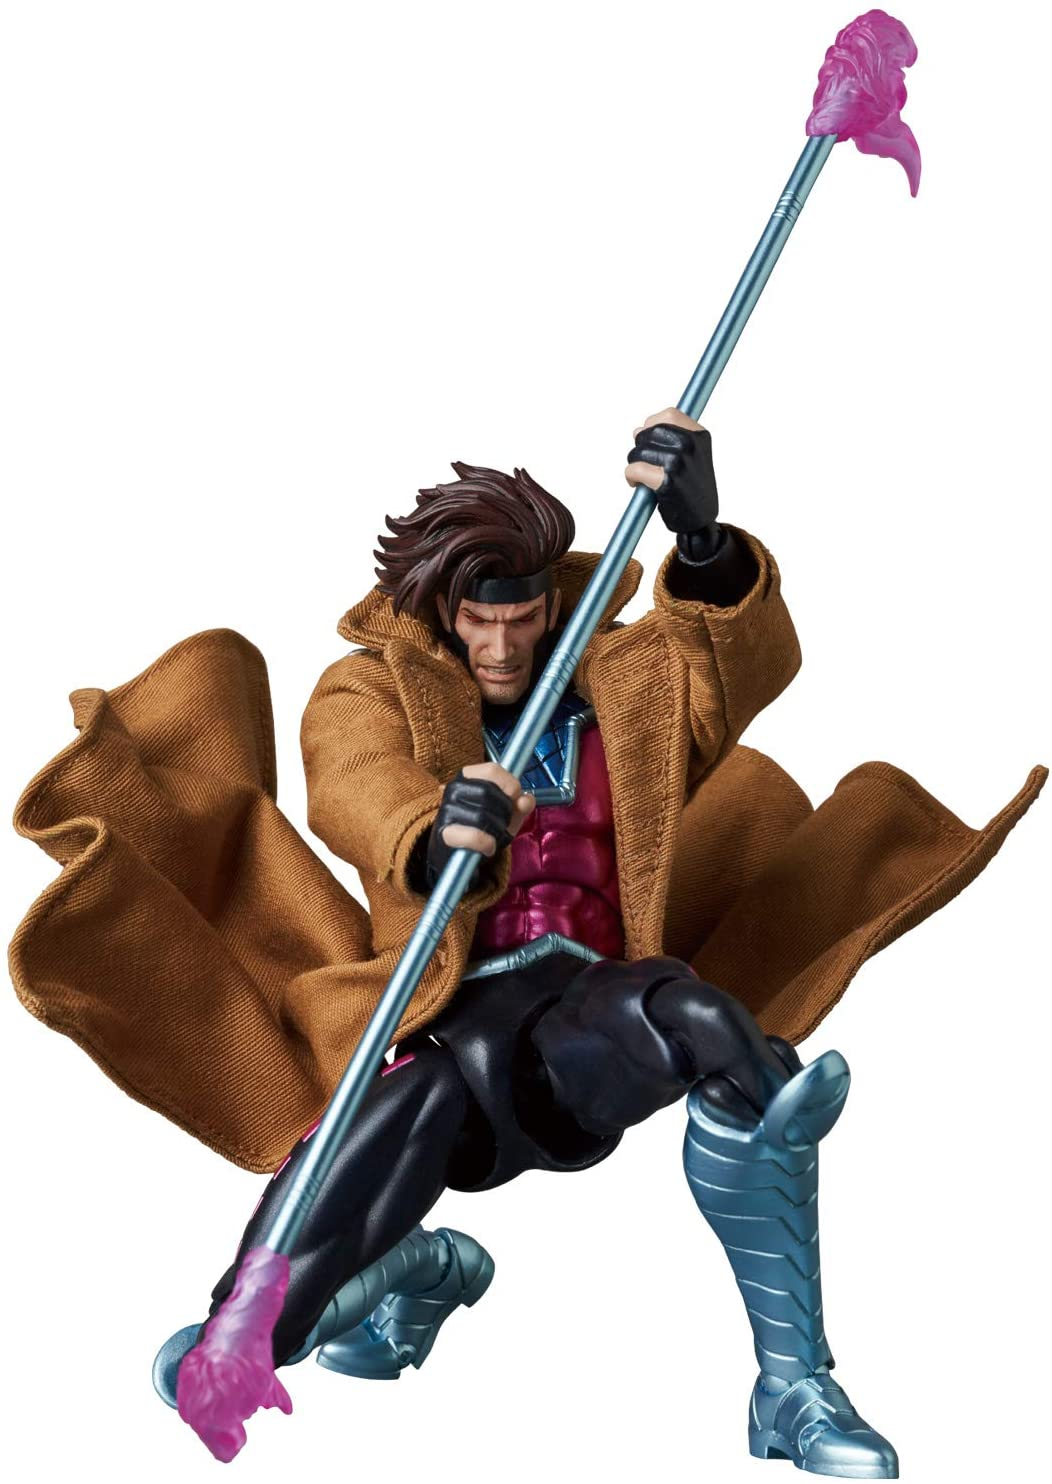 MAFEX Captain America and Gambit Previews-10.jpg